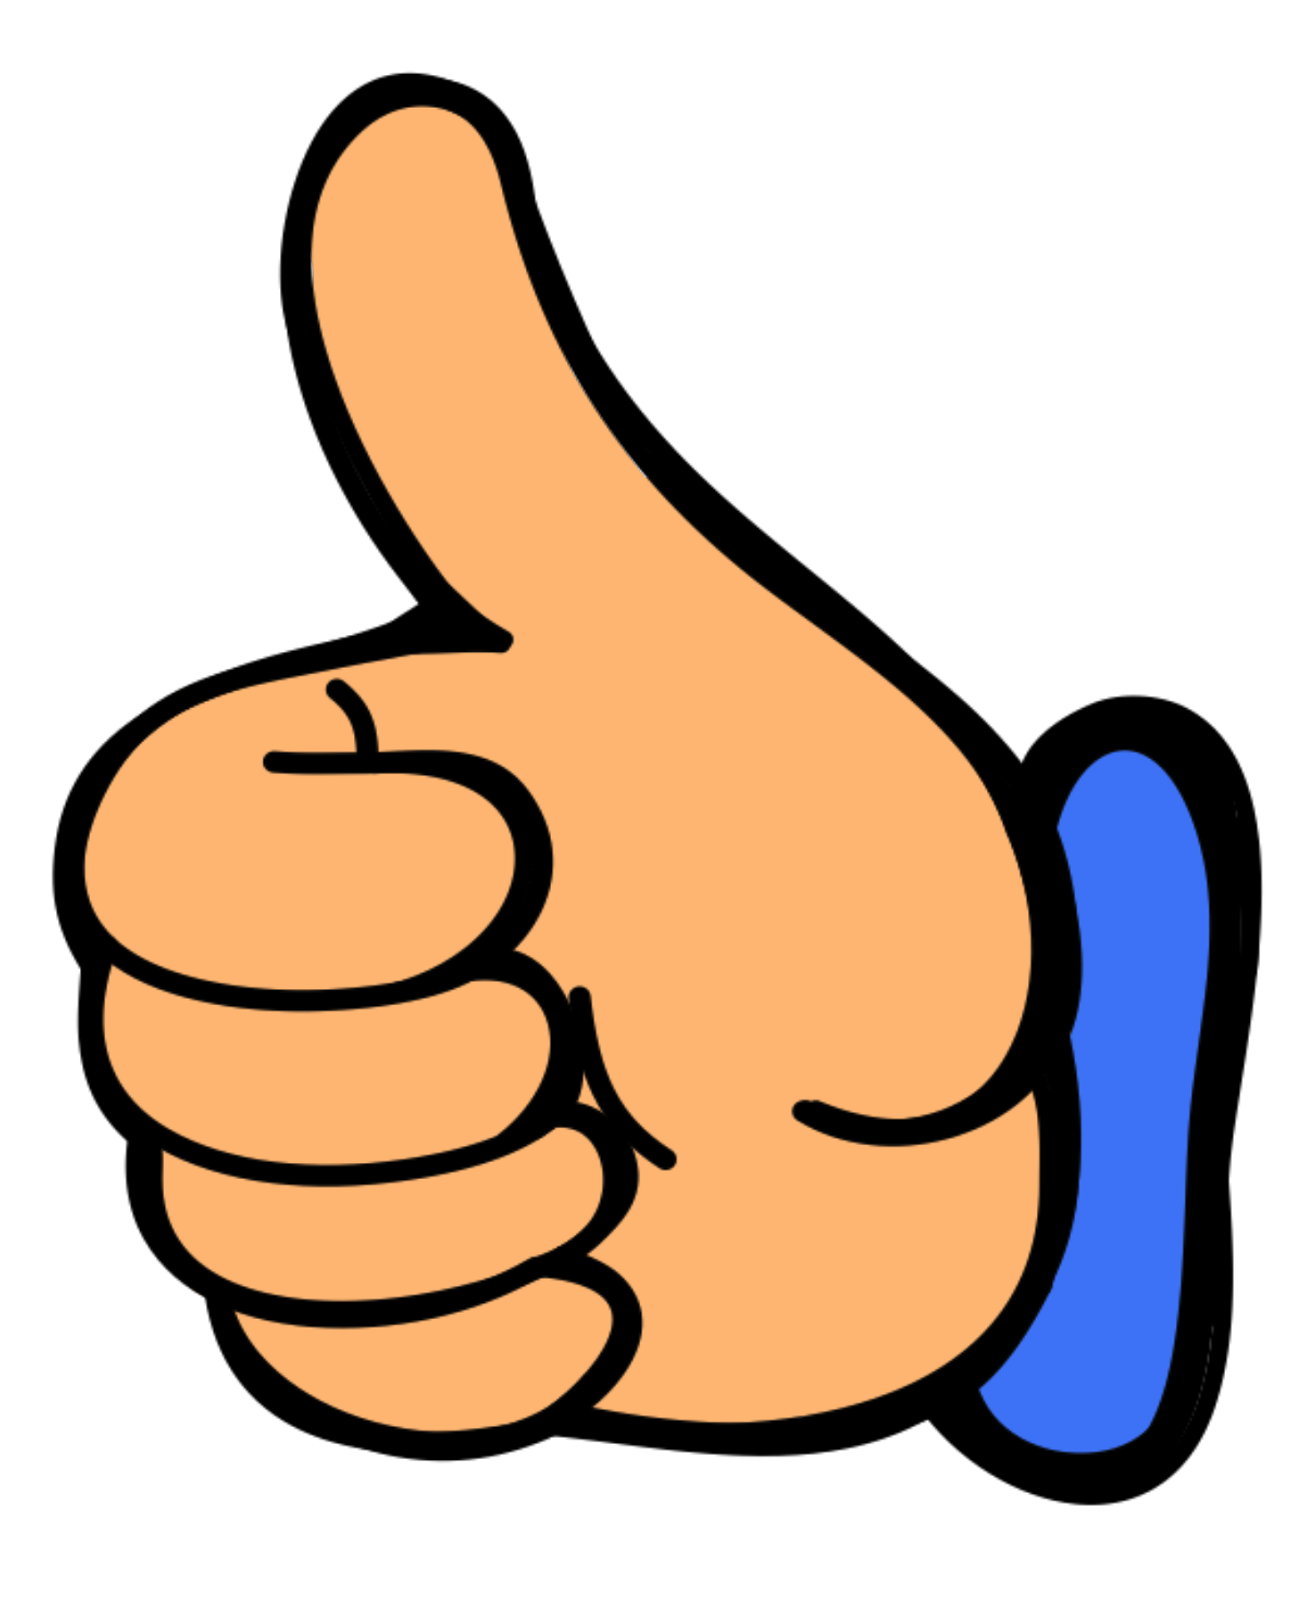 thumbs-up-i-get-it-0F2N66-clipart